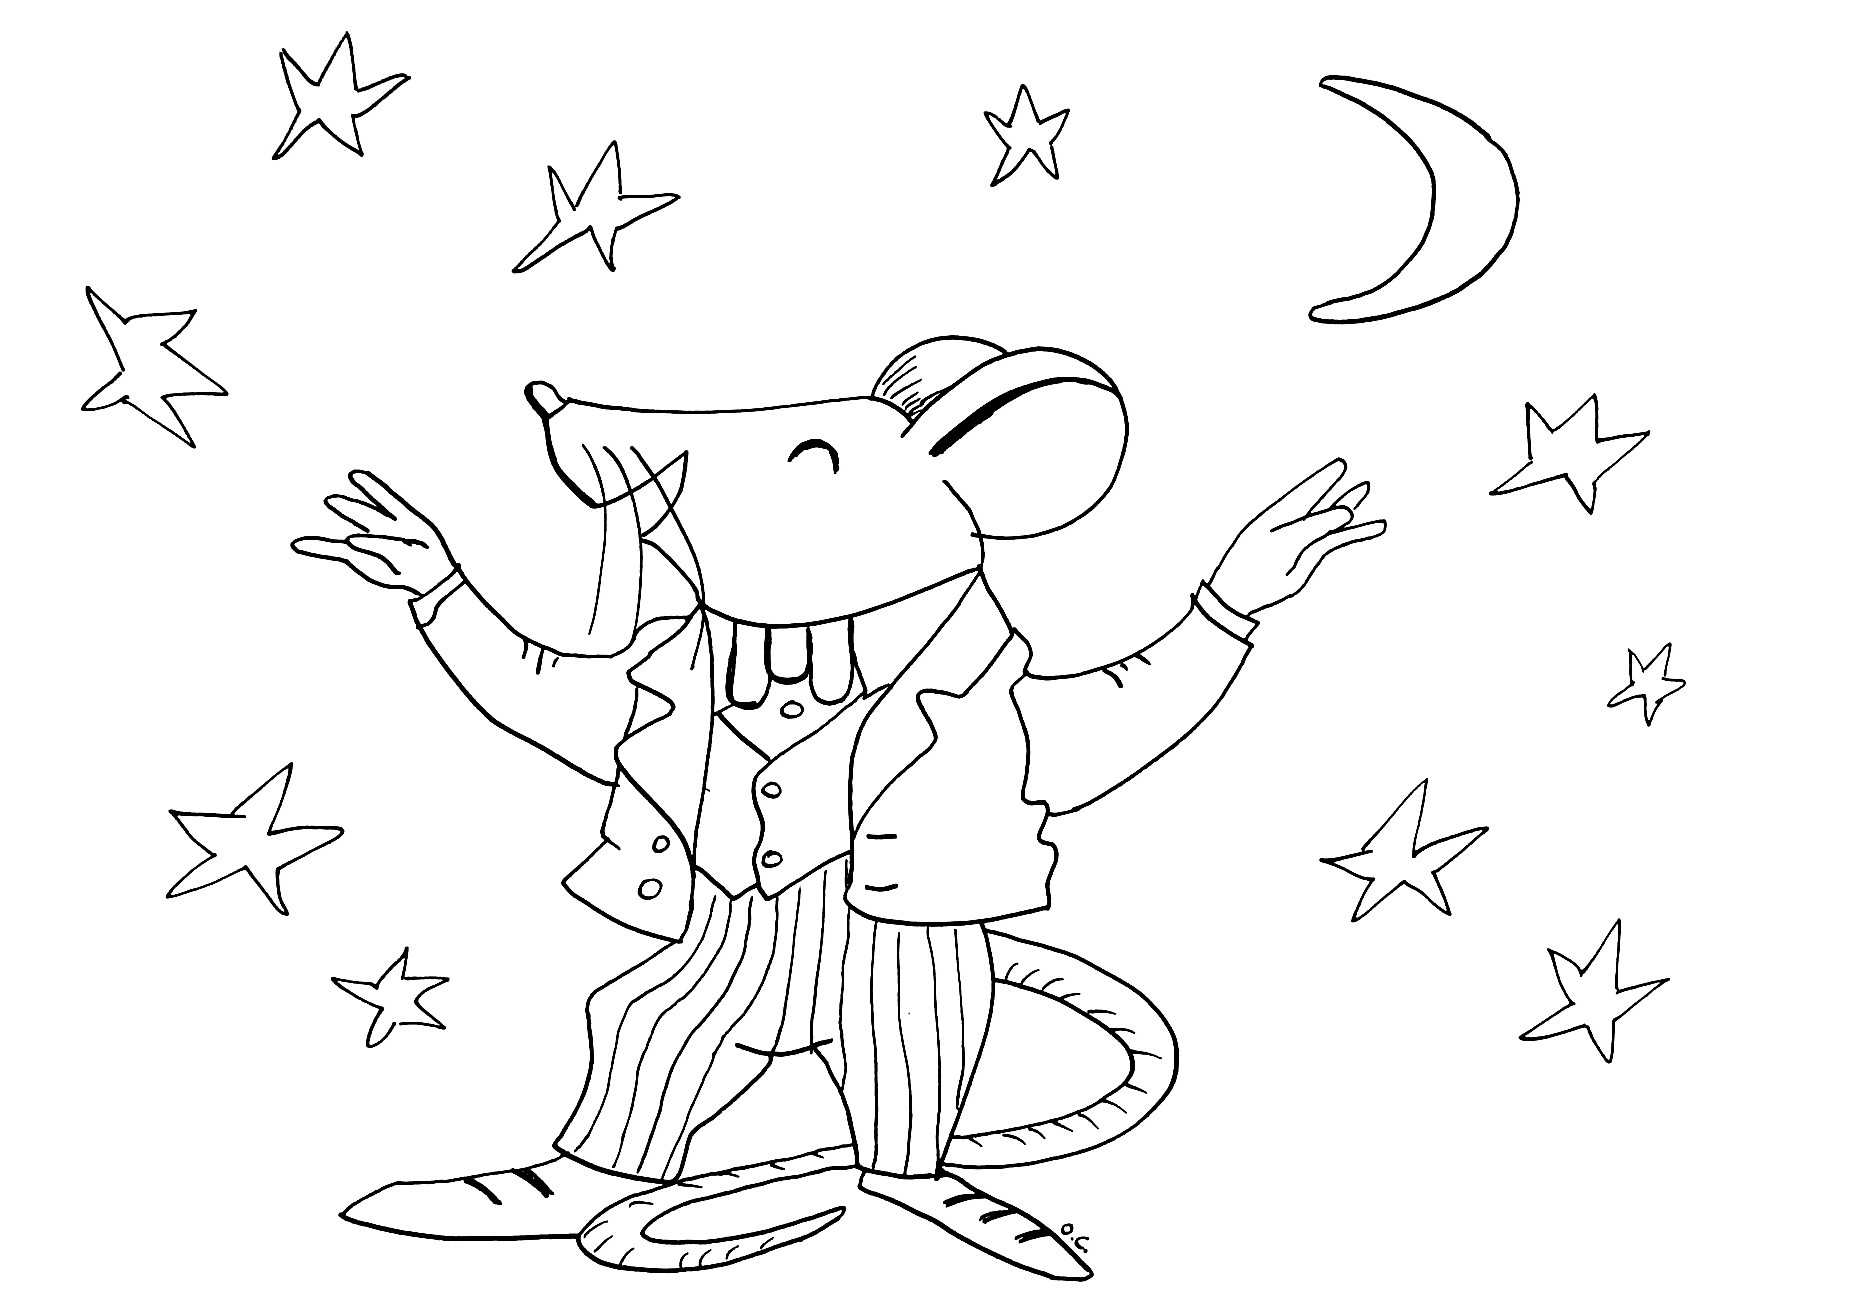 Funny free Mouse coloring page to print and color